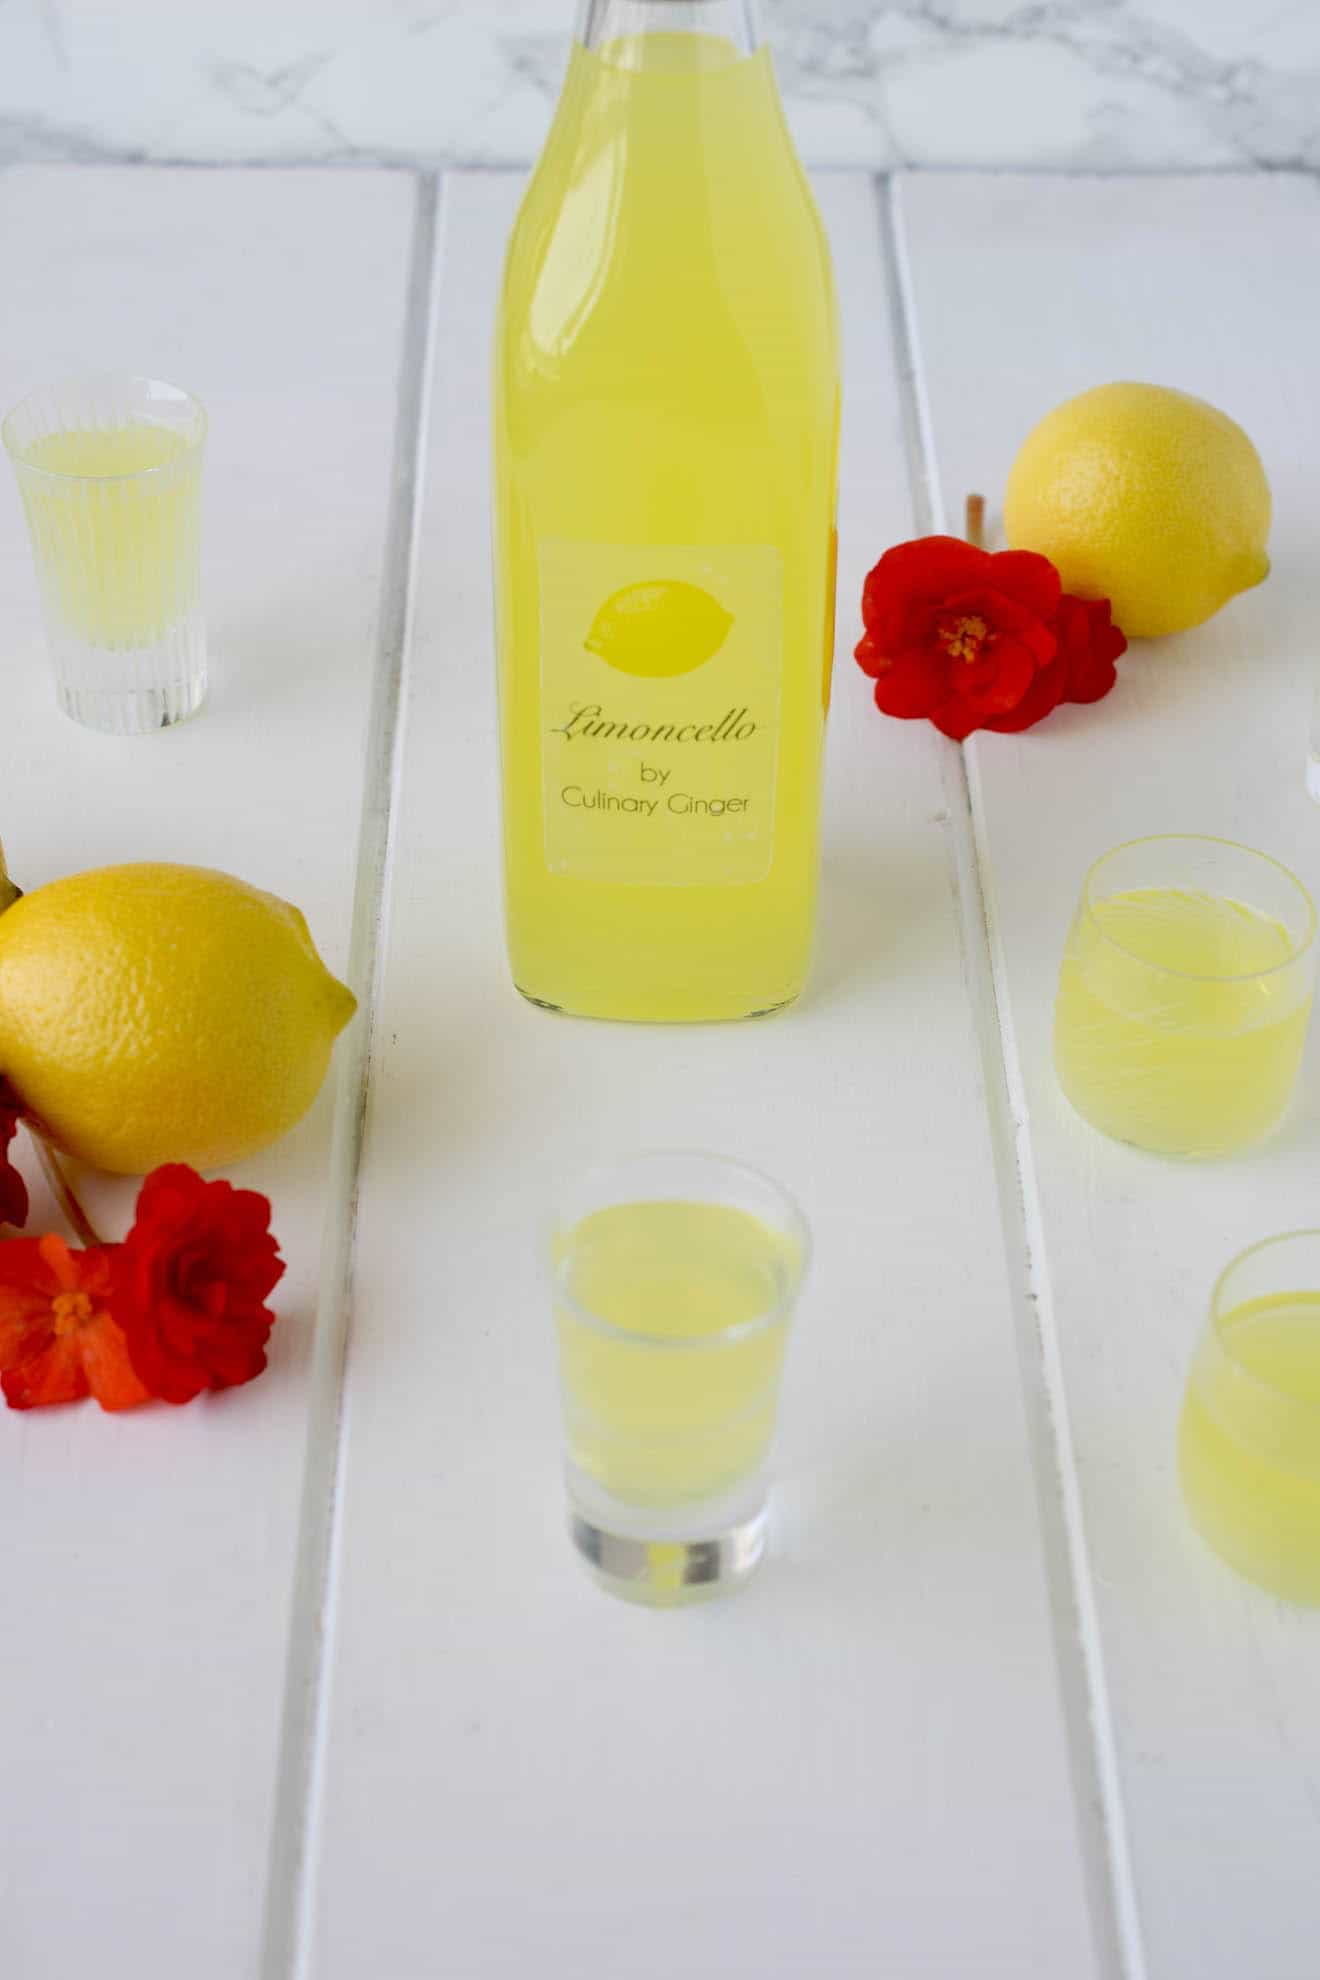 A bottle of limoncello with glasses, lemons and red flowers